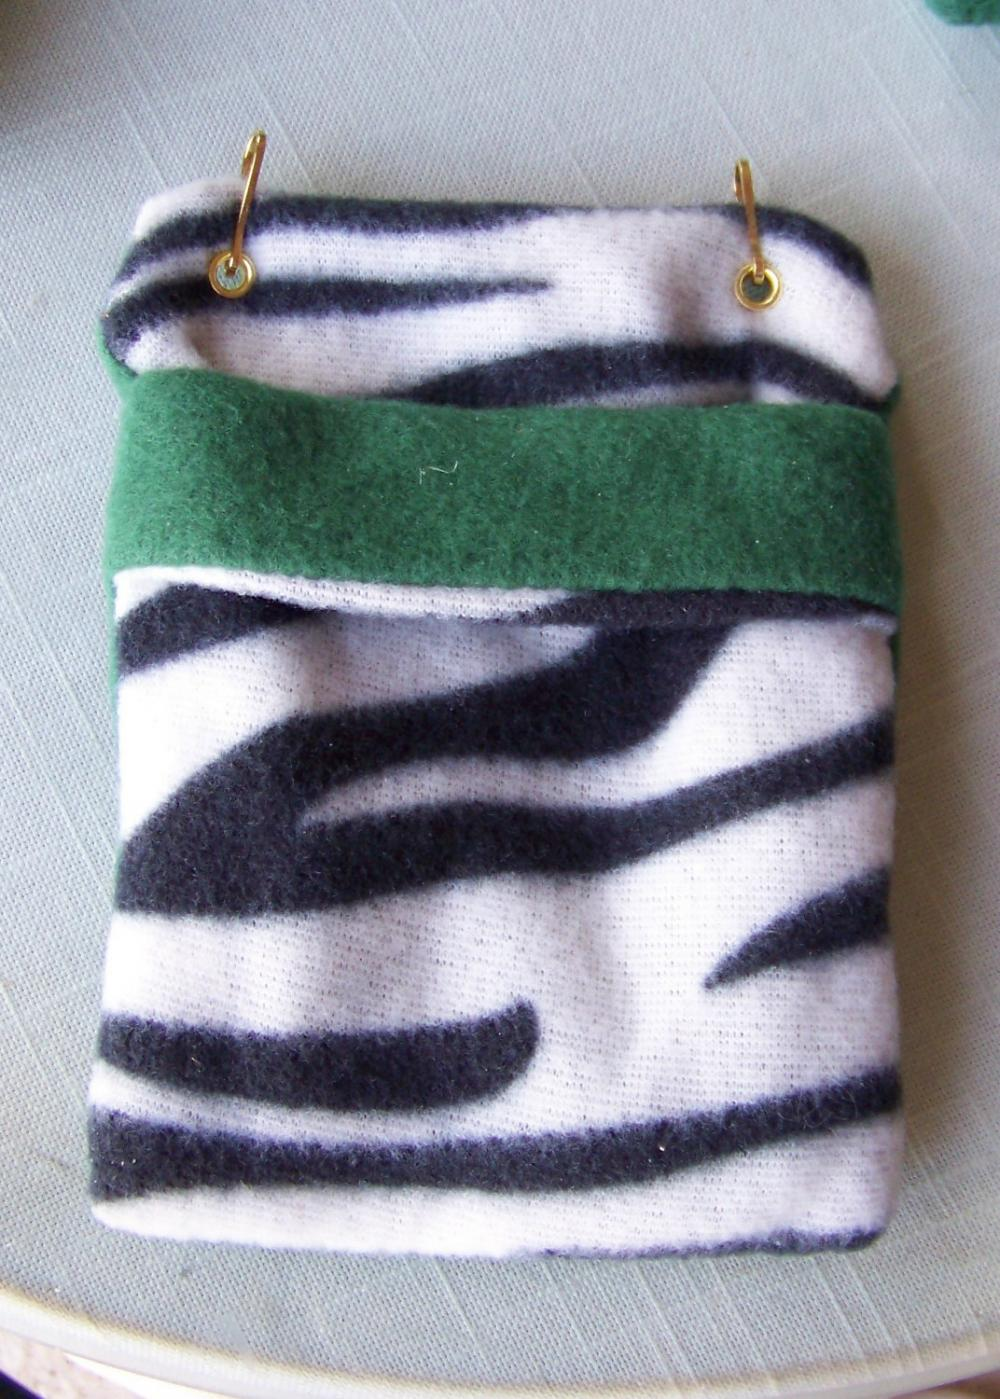 FLEECE BONDING POUCH for Small Pets - Green with Black and White Zebra Stripe patterned Fleece - 4.5 x 6 inches